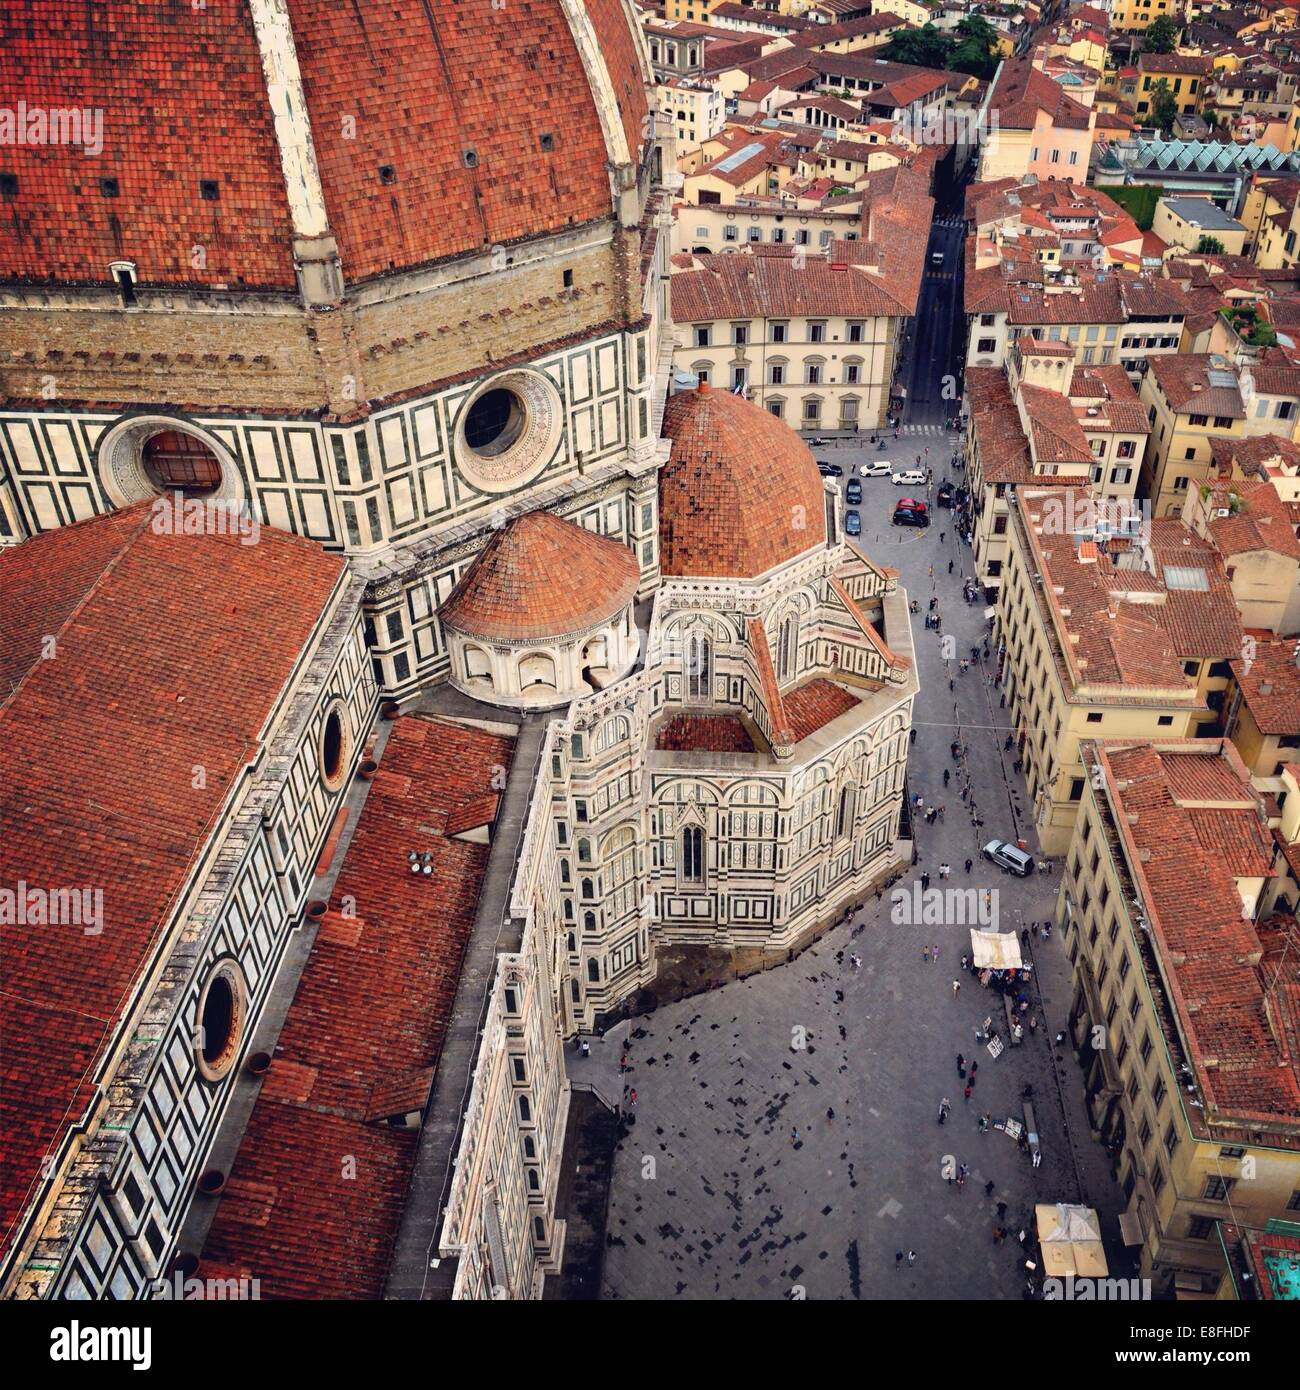 Italy, Florence, Duomo in Florence - Stock Image